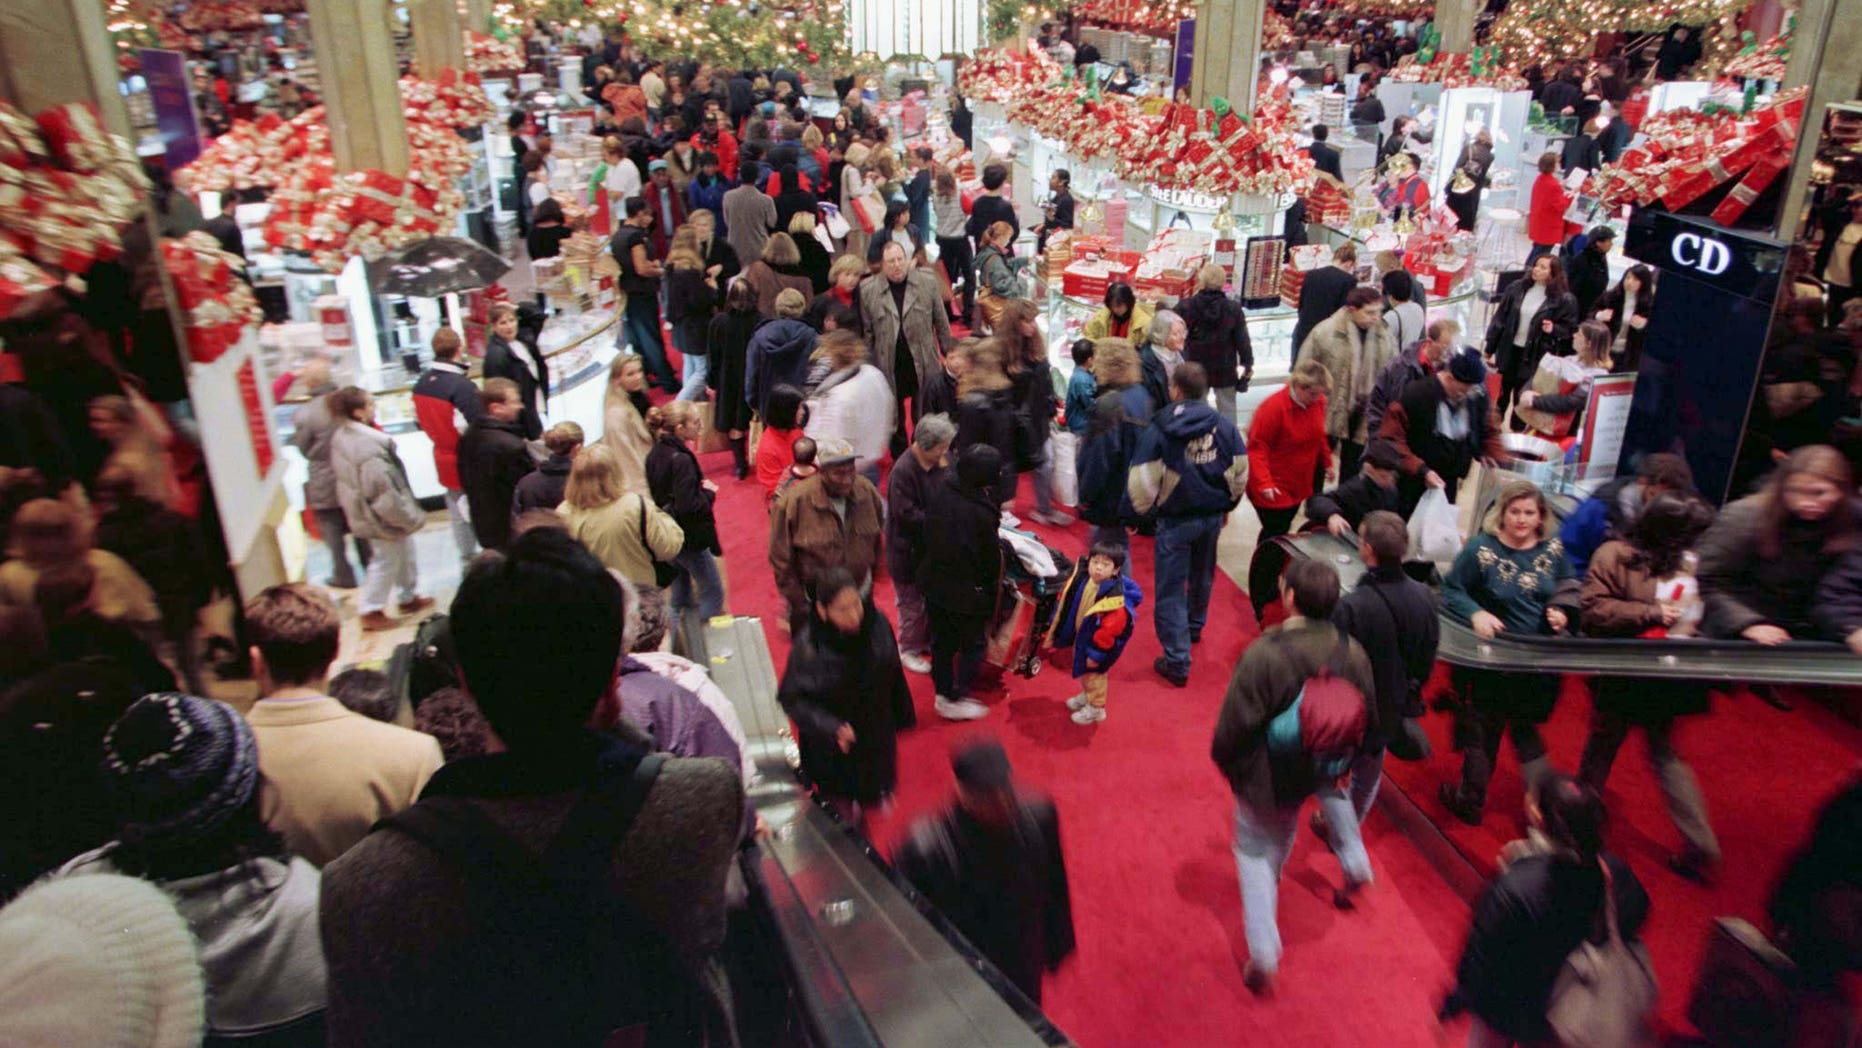 """Shoppers careen through the main floor at Macy's department store in New York on November 28, the official start of the holiday shopping season. Retailers dub the day """"Black Friday"""" in hope that sales will turn into the black ink of profits for the all-important retail season. - RTXH3SJ"""